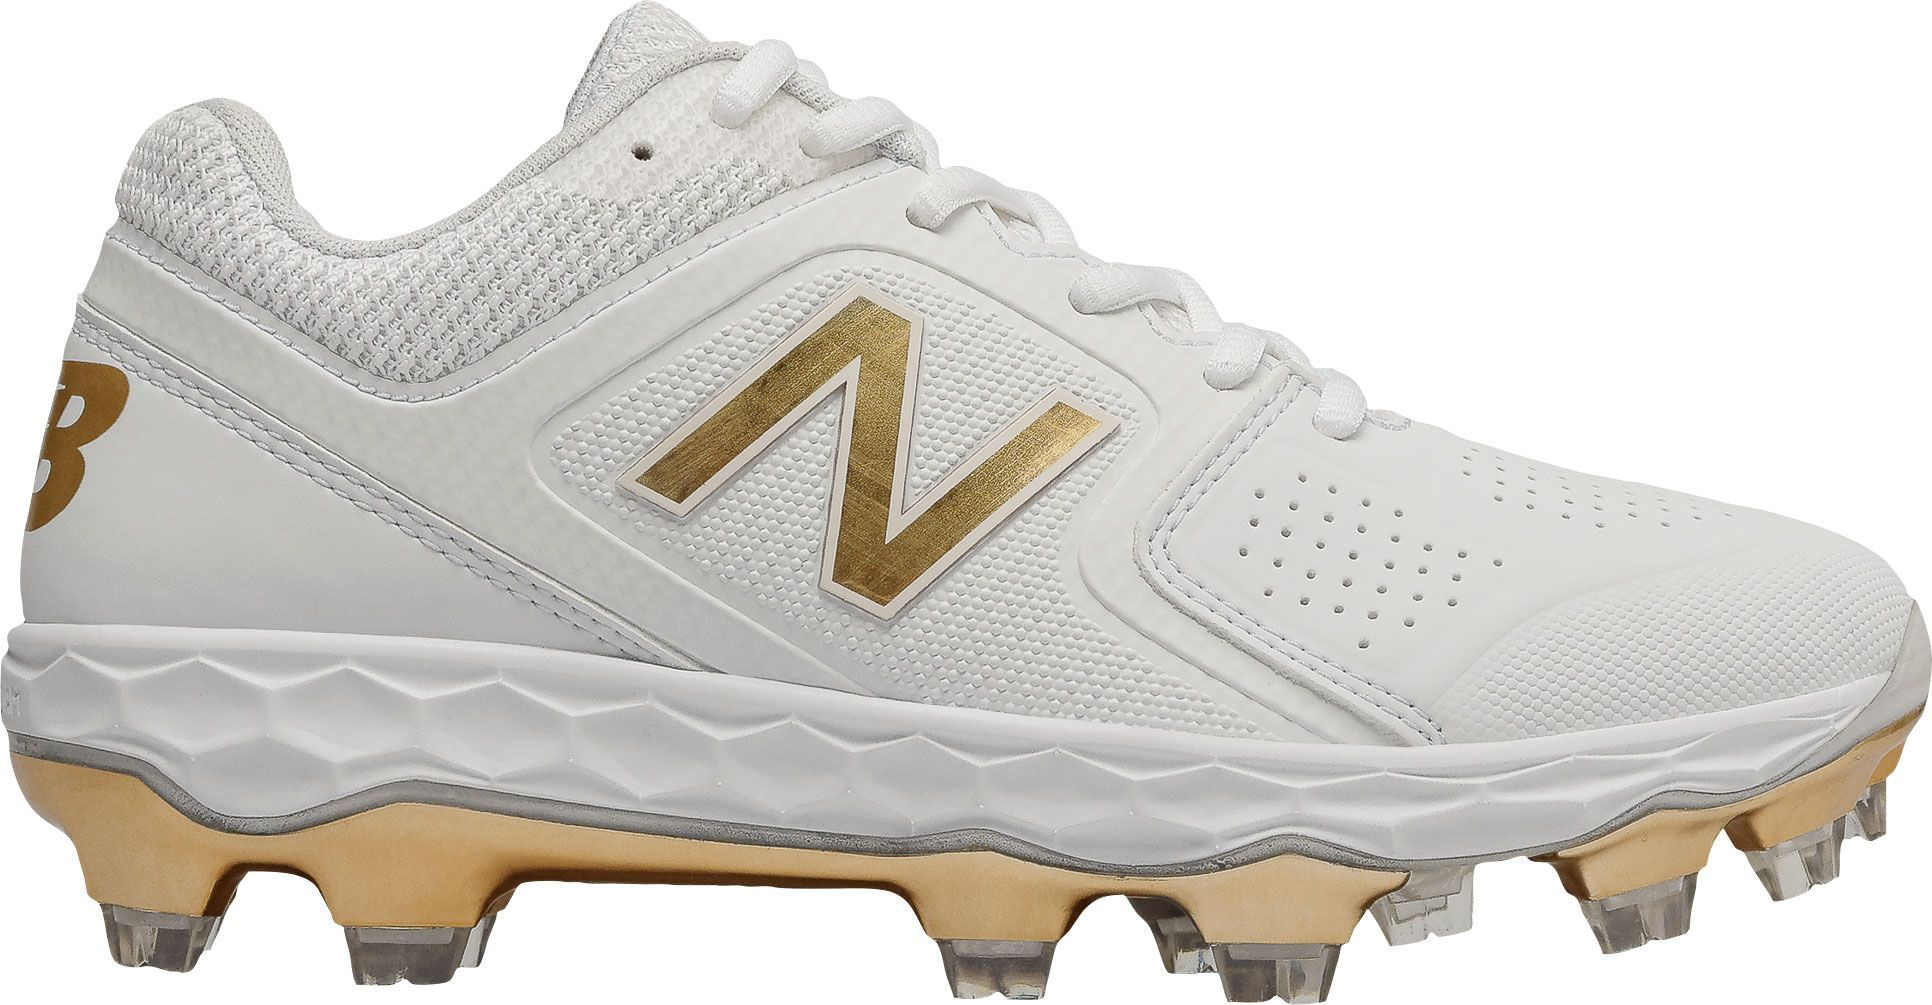 New Balance Women S Fresh Foam Velo 1 Softball Cleats Products Softball Cleats Softball New Balance